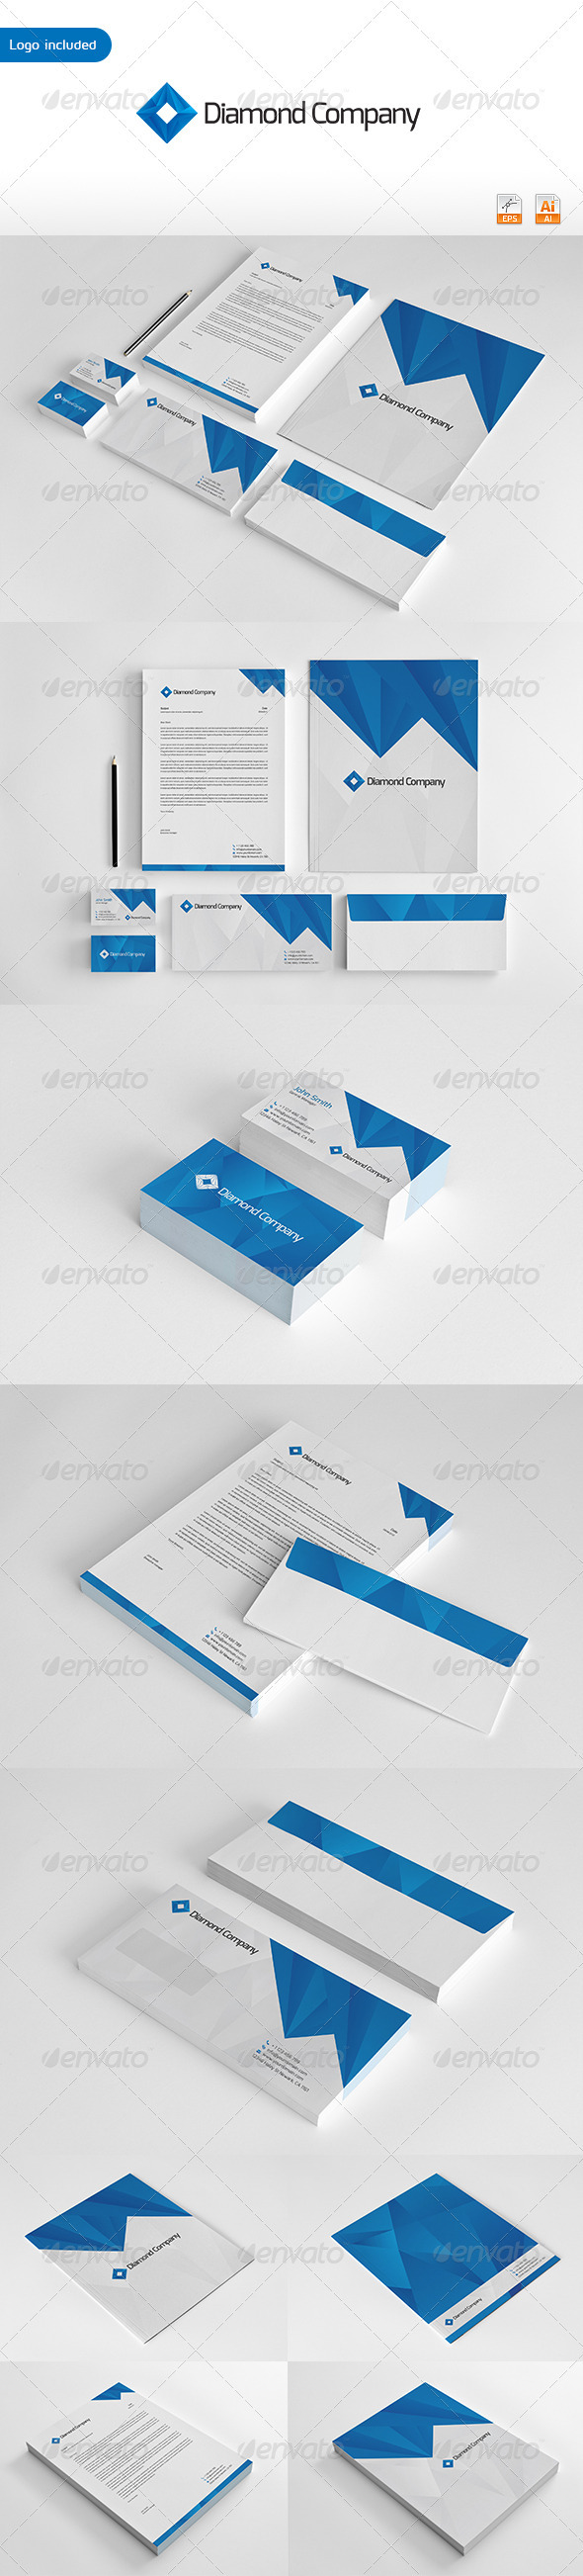 Diamond Company Corporate Identity - Stationery Print Templates